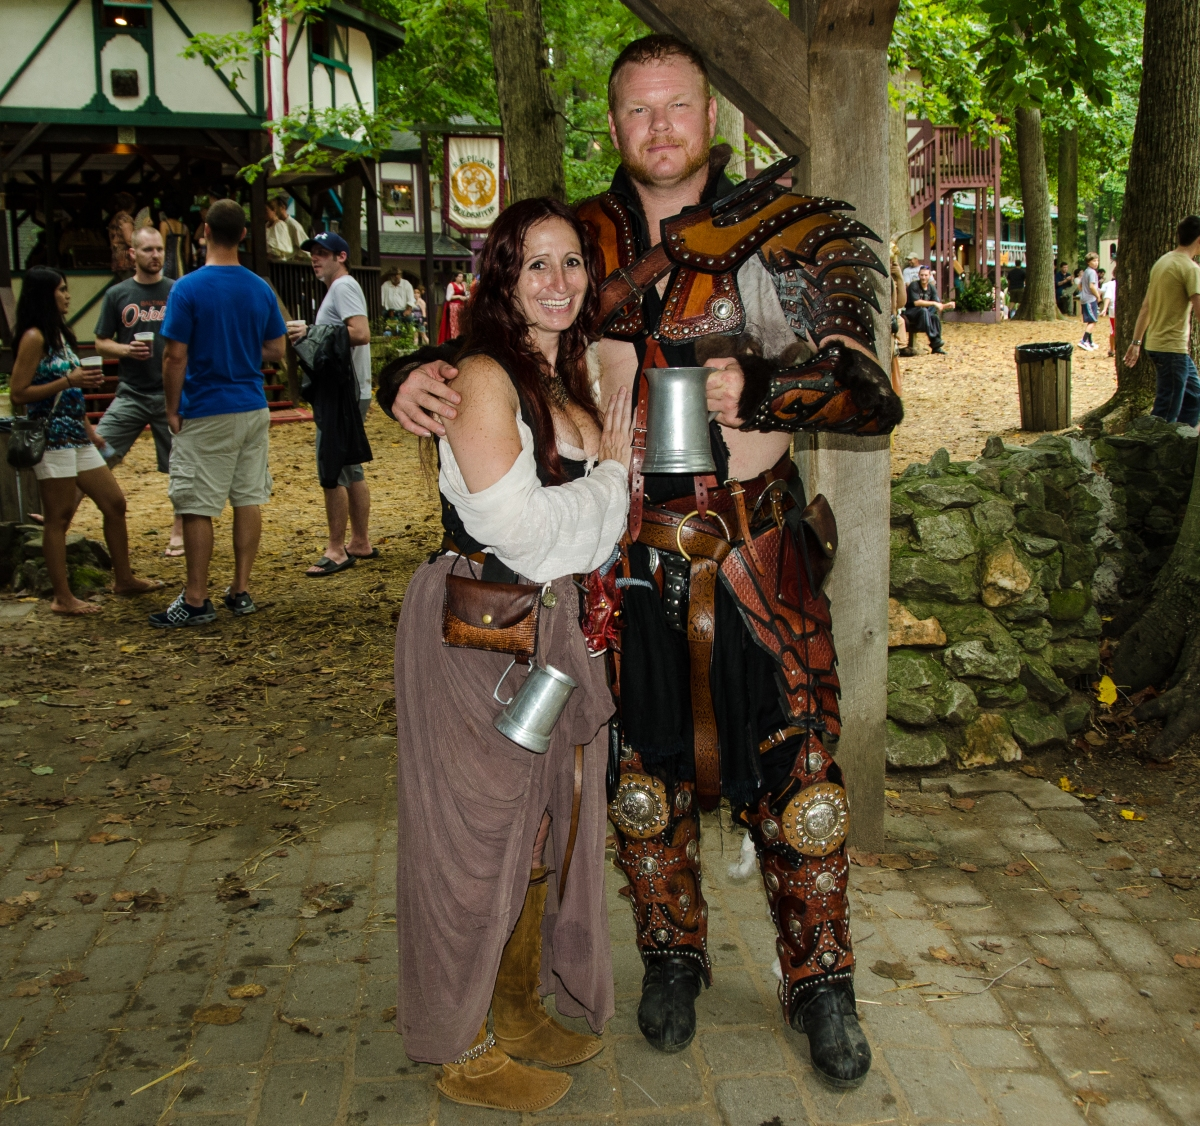 Awesome costumes at Maryland Renaissance Festival